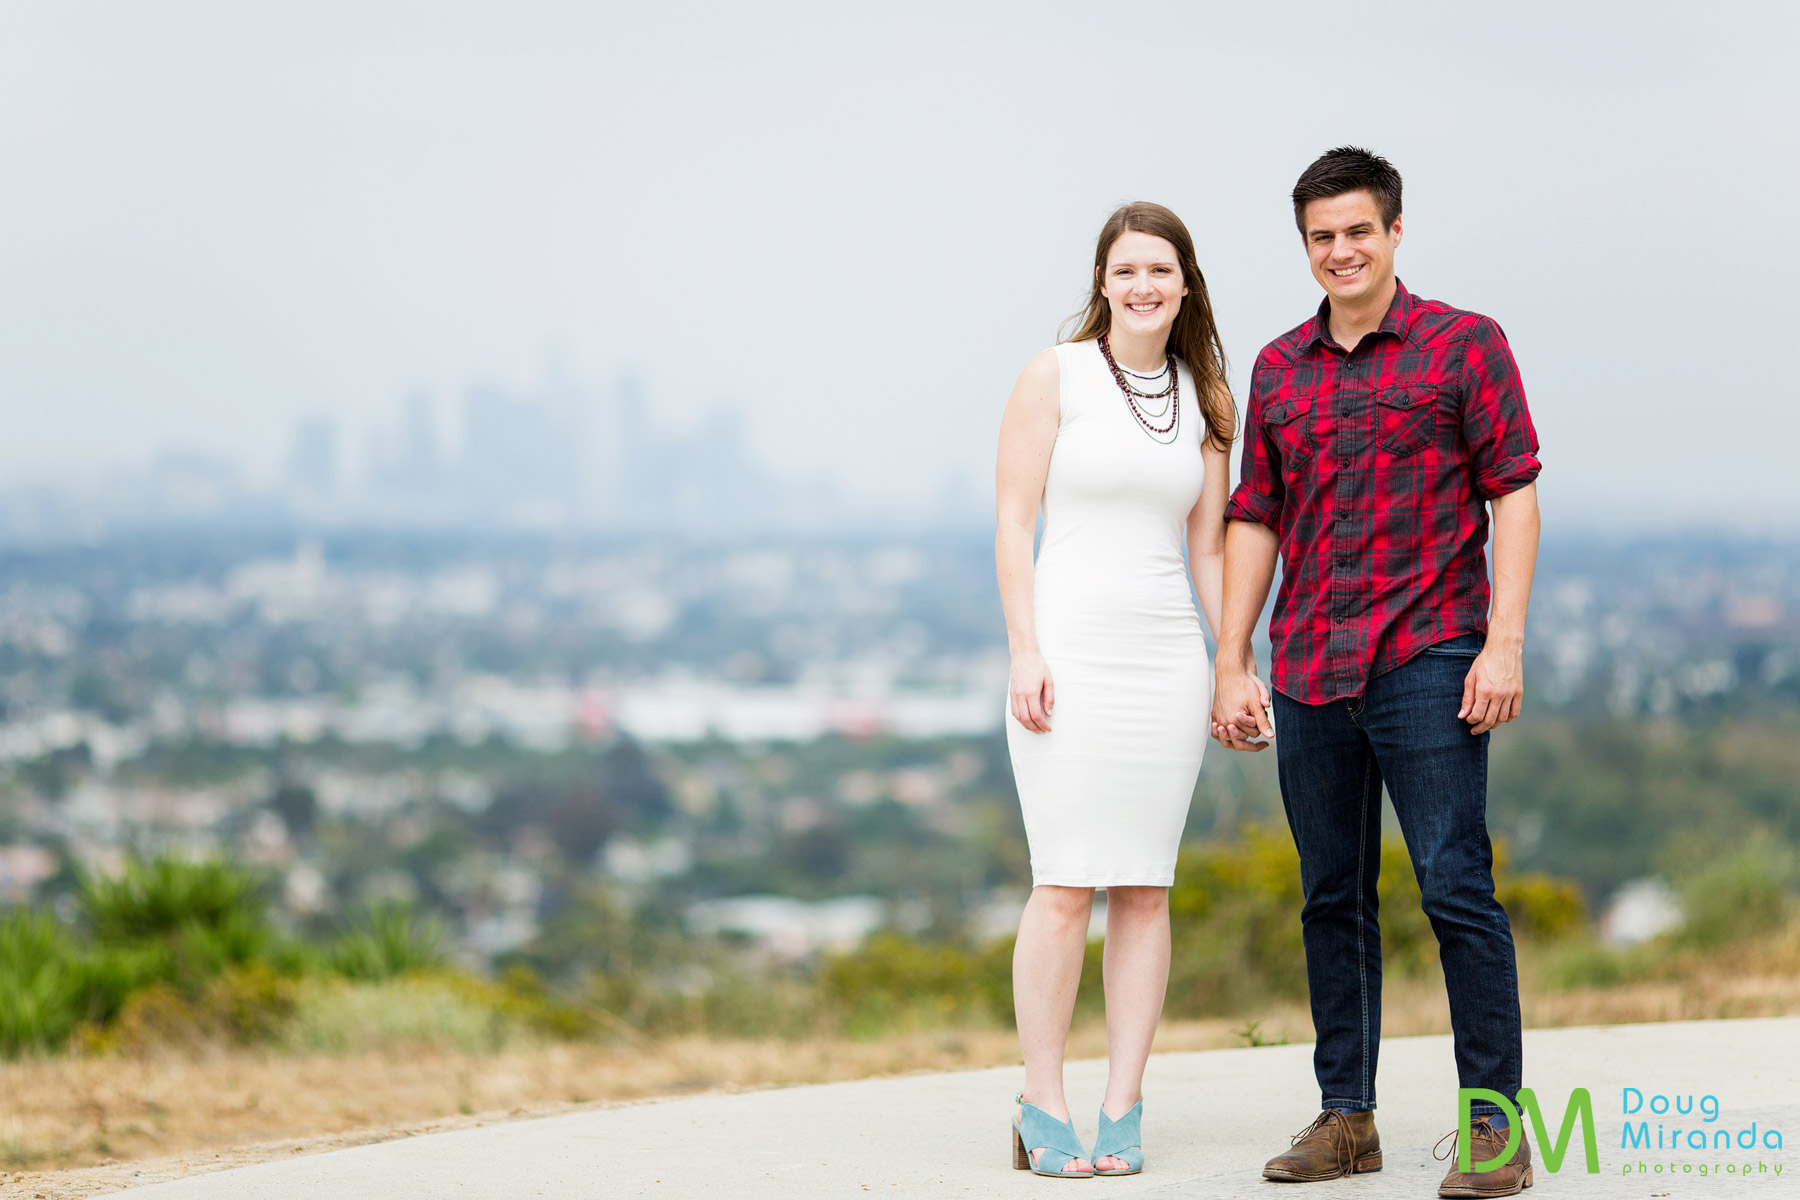 baldwin hills overlook engagement